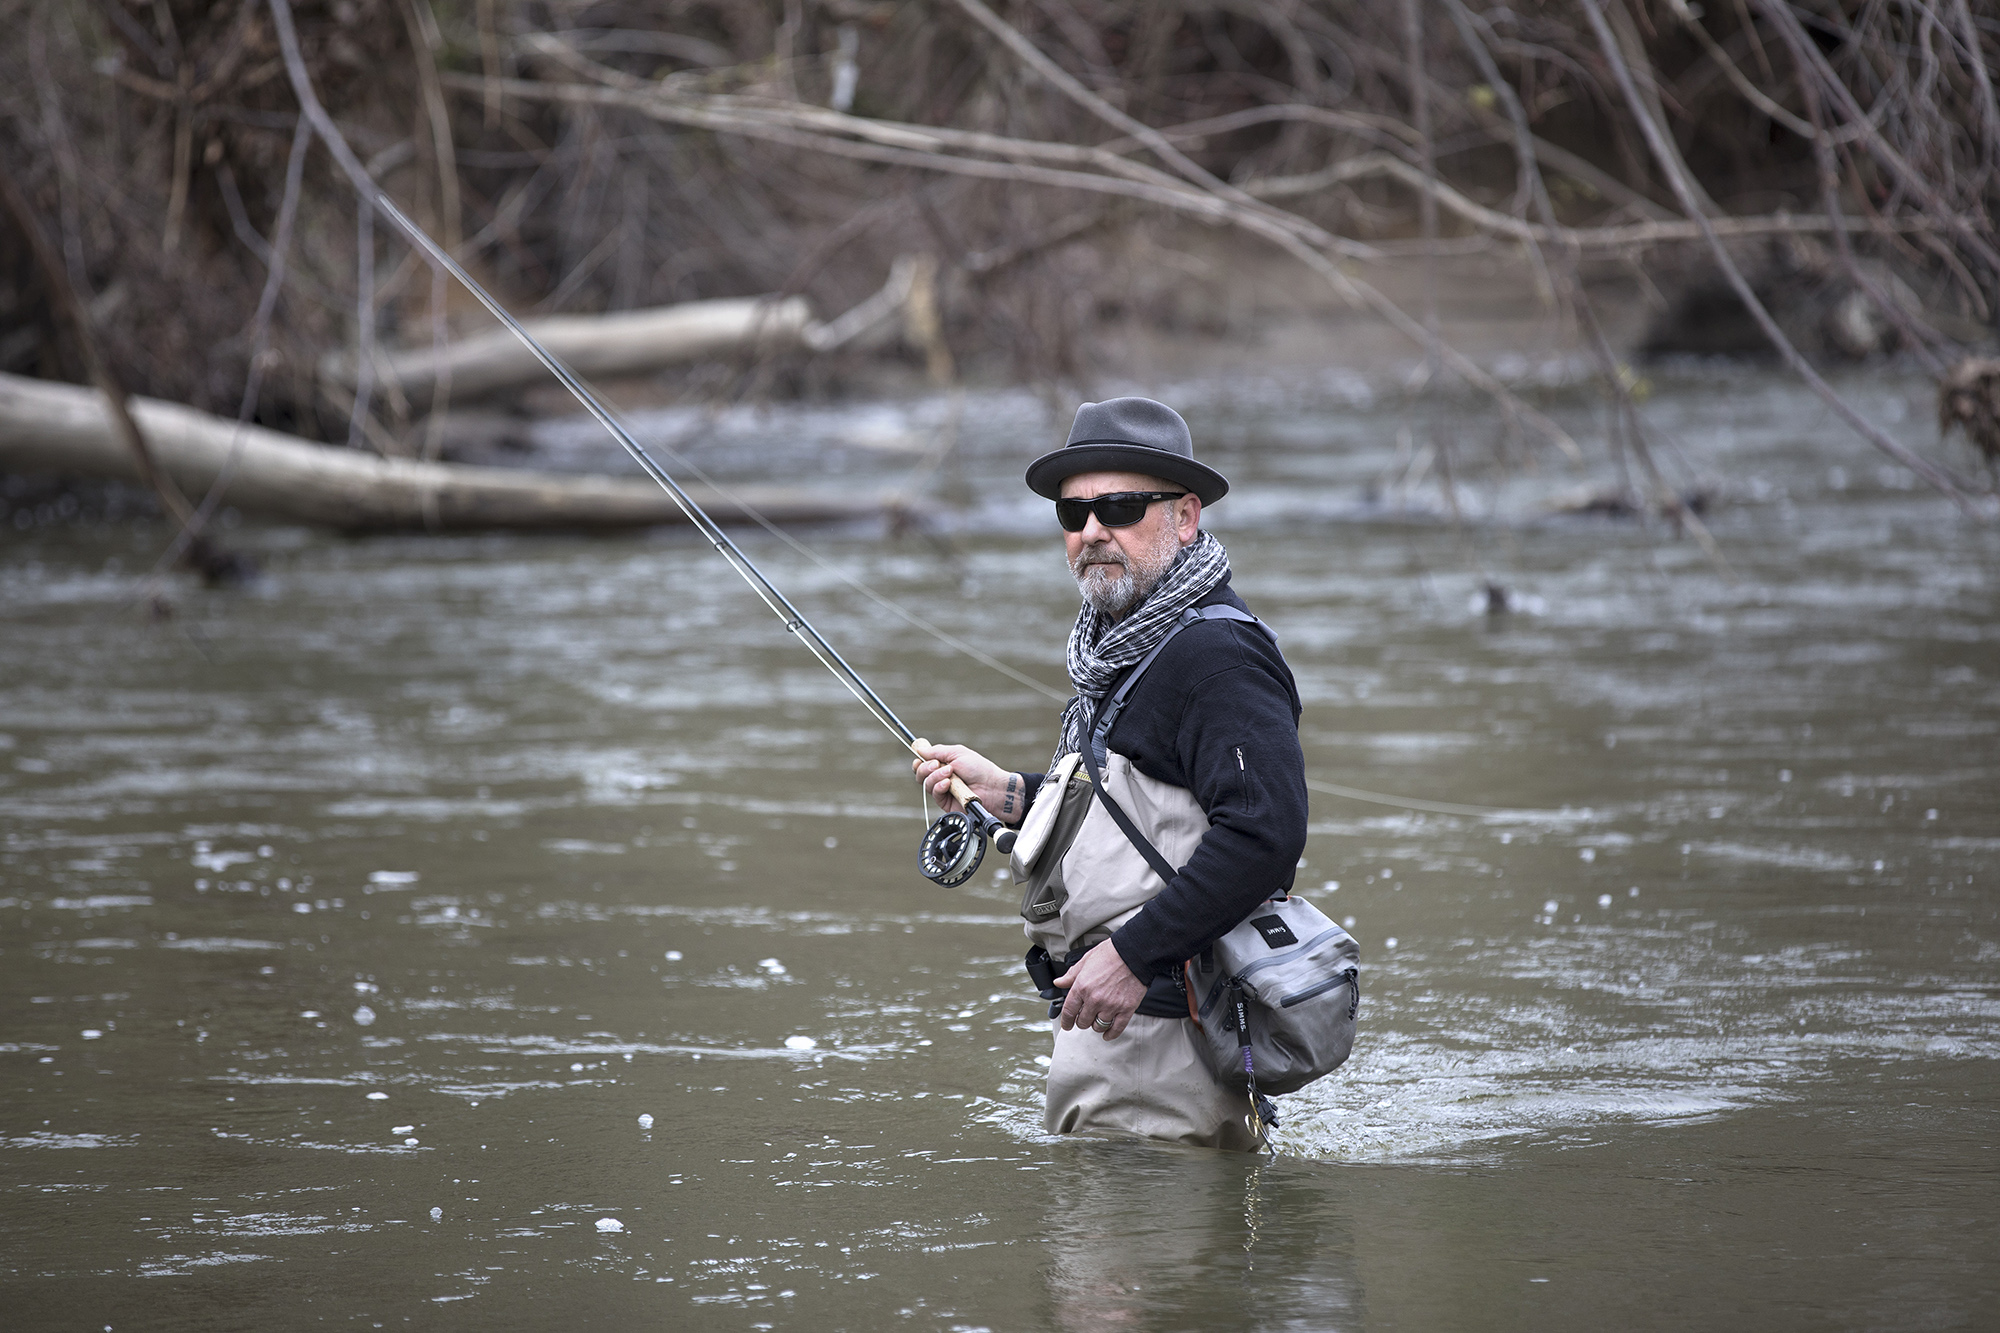 Fly Fishing the Chagrin River in Ohio | American Rivers Tour